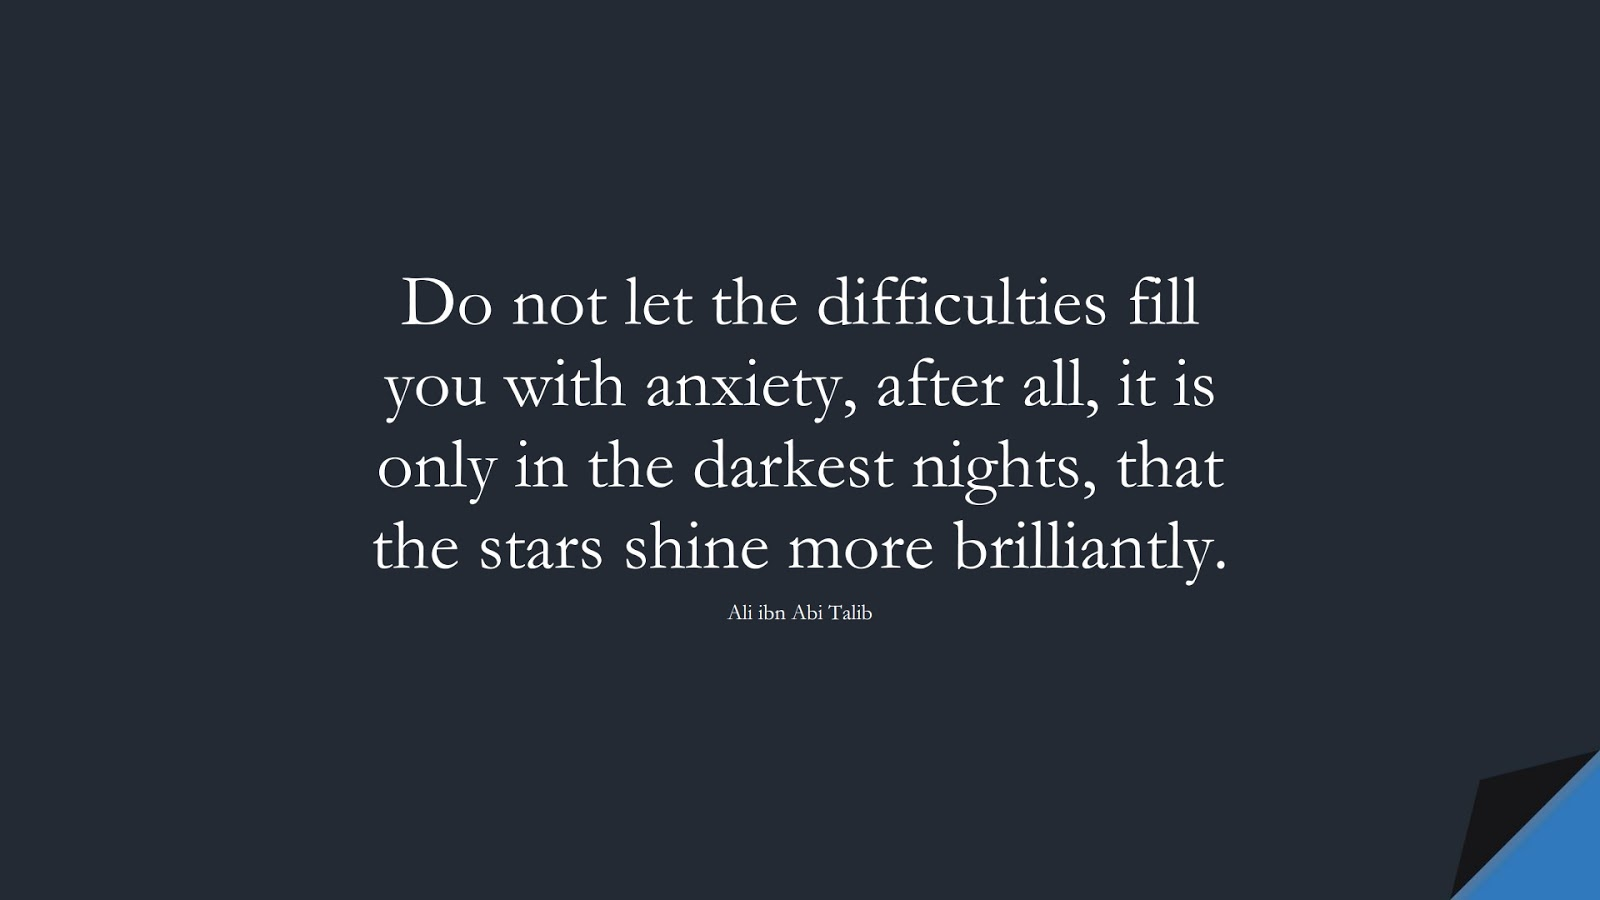 Do not let the difficulties fill you with anxiety, after all, it is only in the darkest nights, that the stars shine more brilliantly. (Ali ibn Abi Talib);  #AliQuotes